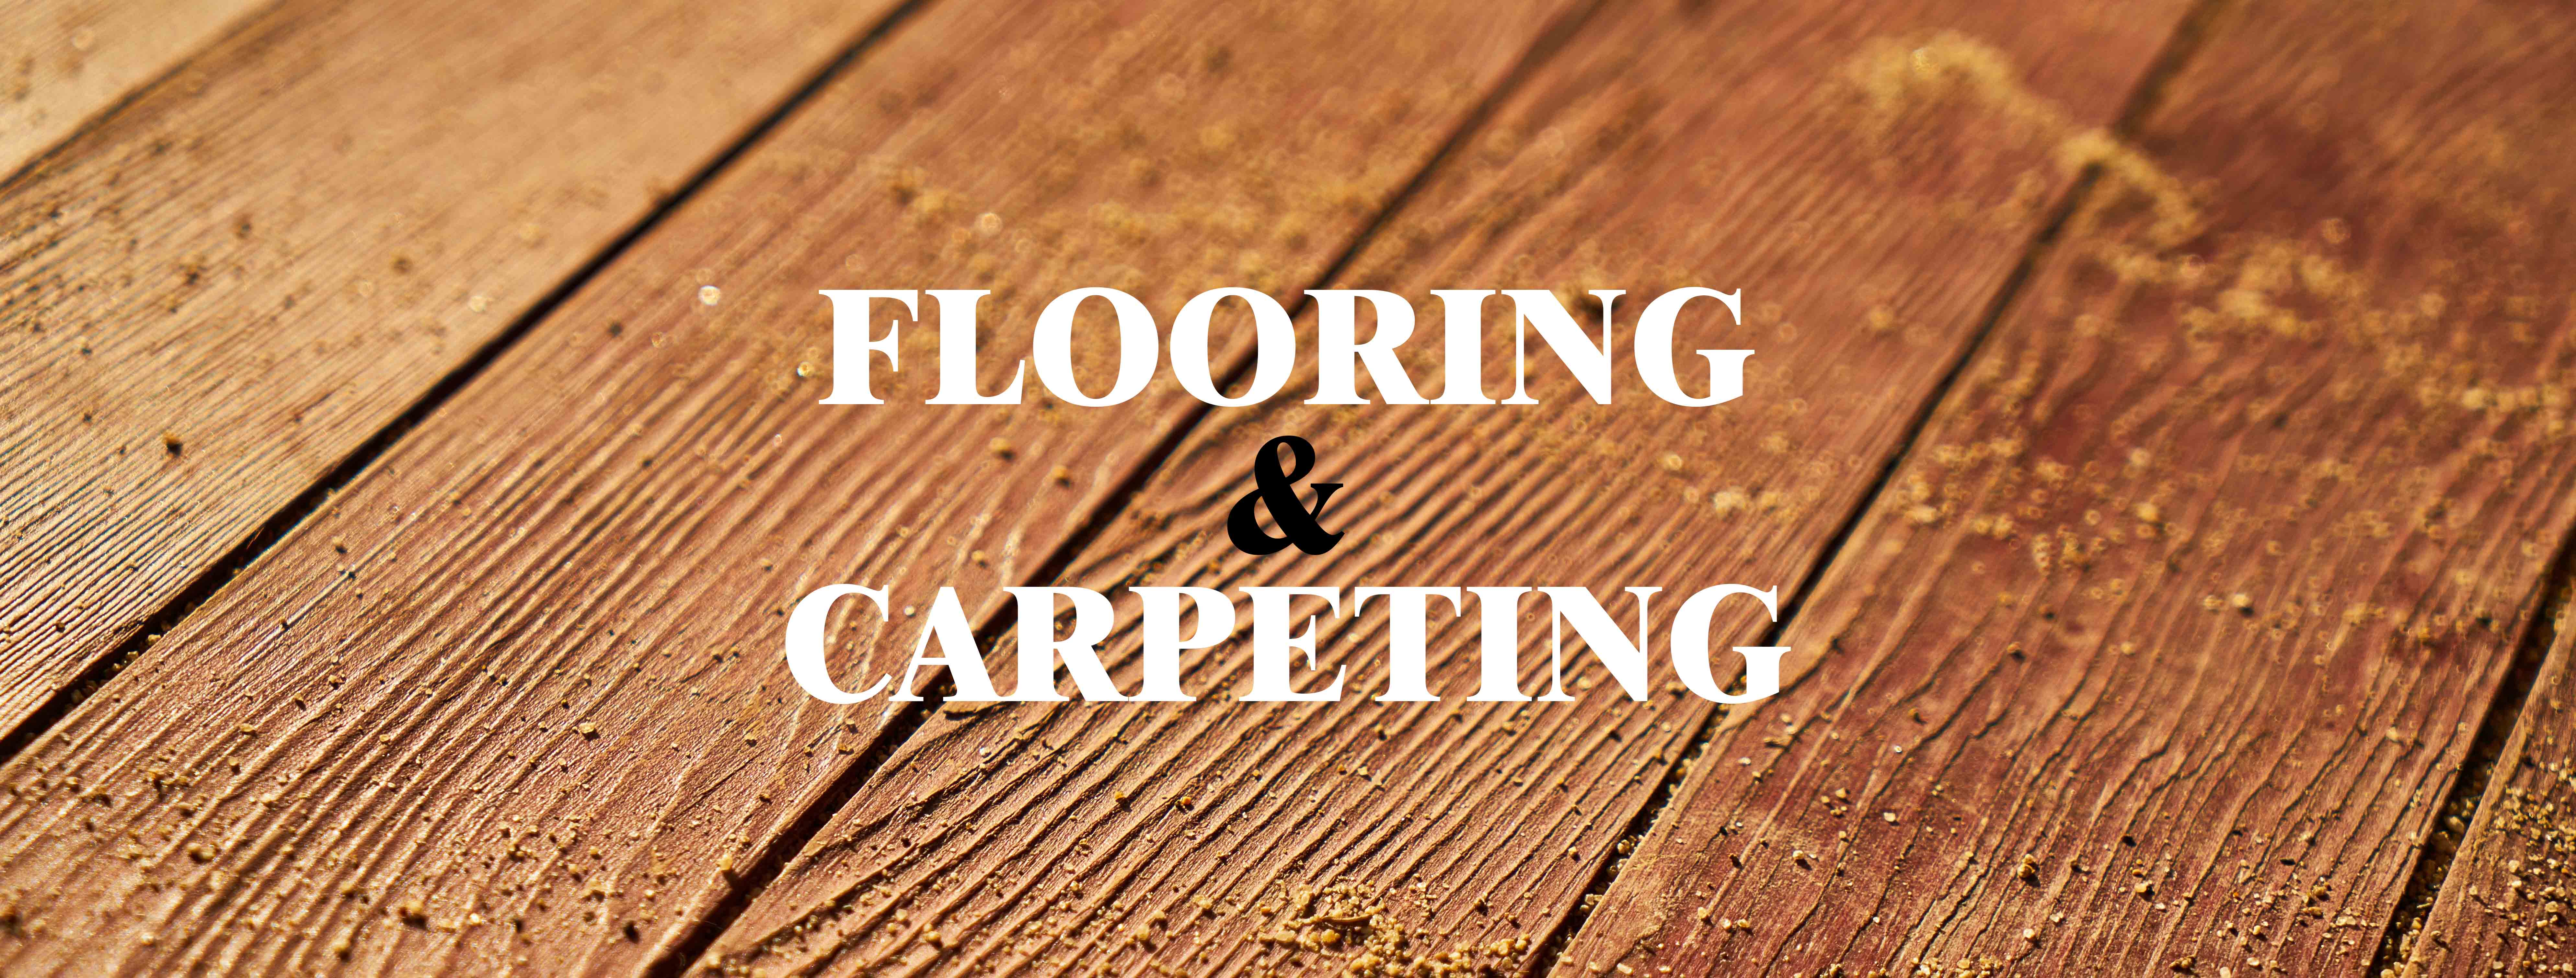 Flooring and Carpeting